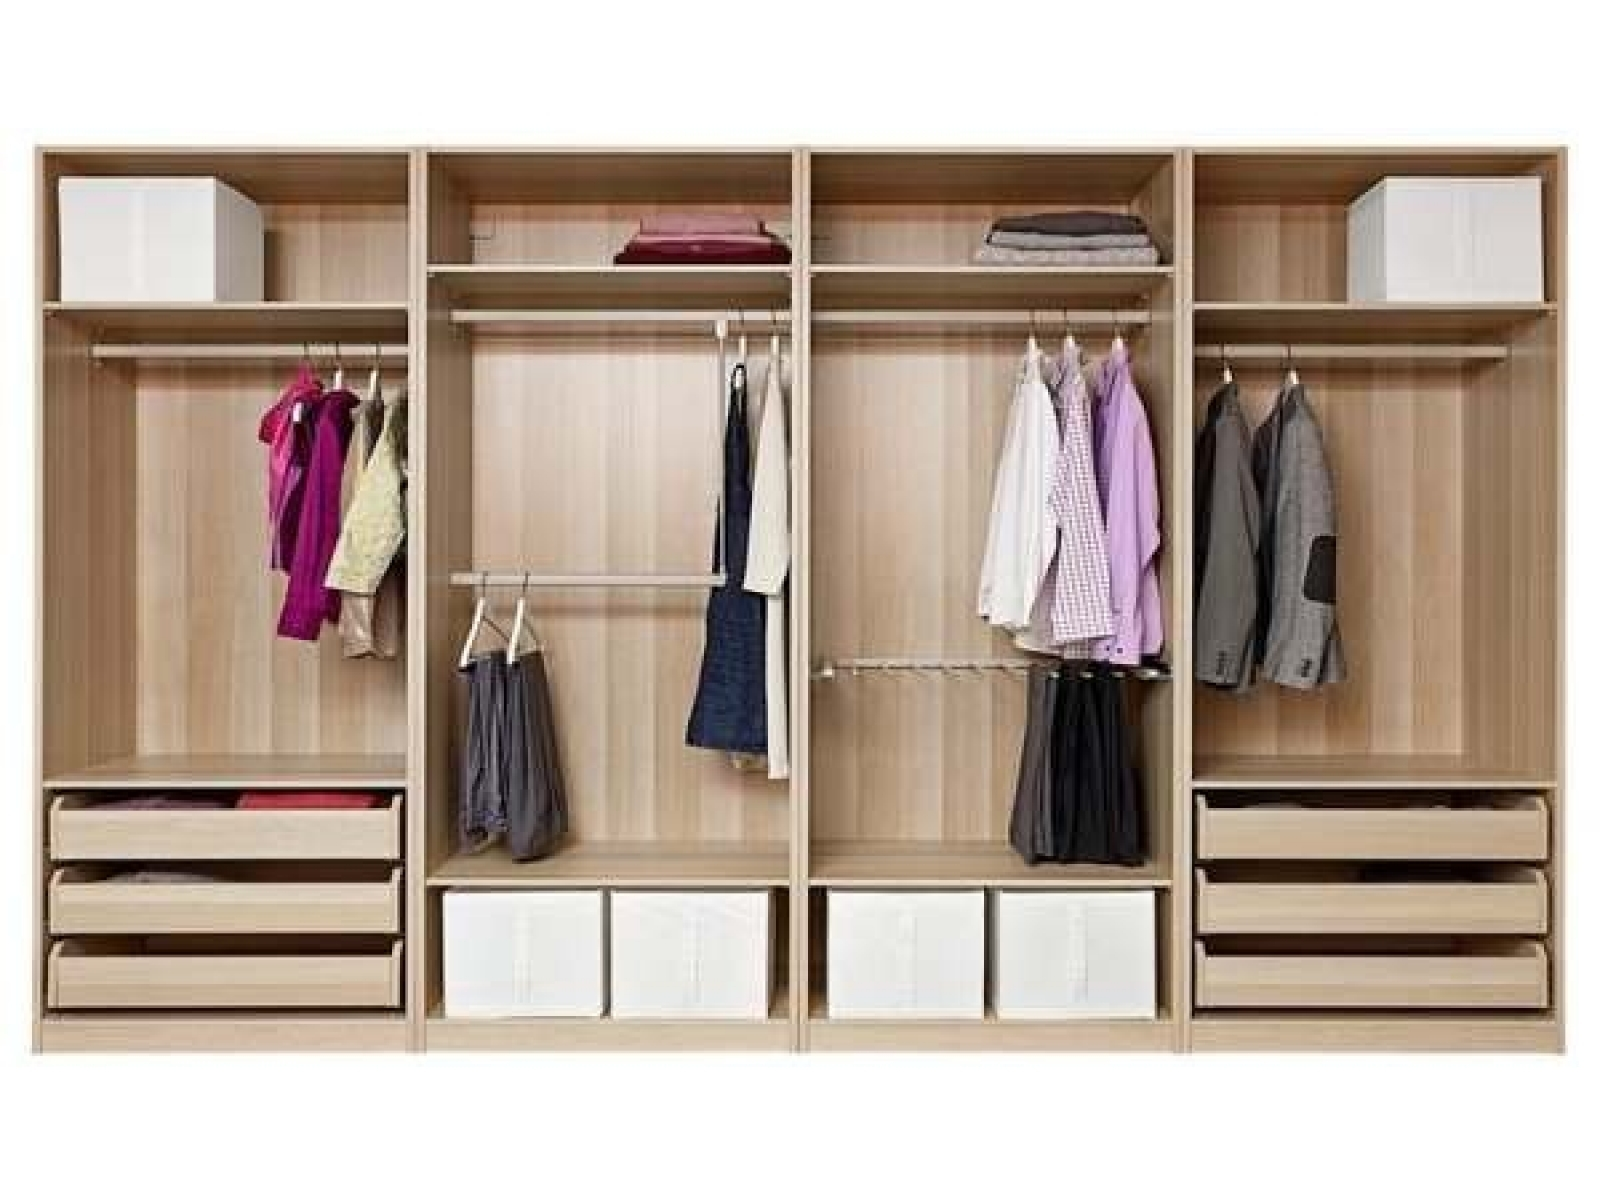 Delightful Drawers For Closet Roselawnlutheran Throughout Wardrobes With Shelves And Drawers (Image 7 of 15)